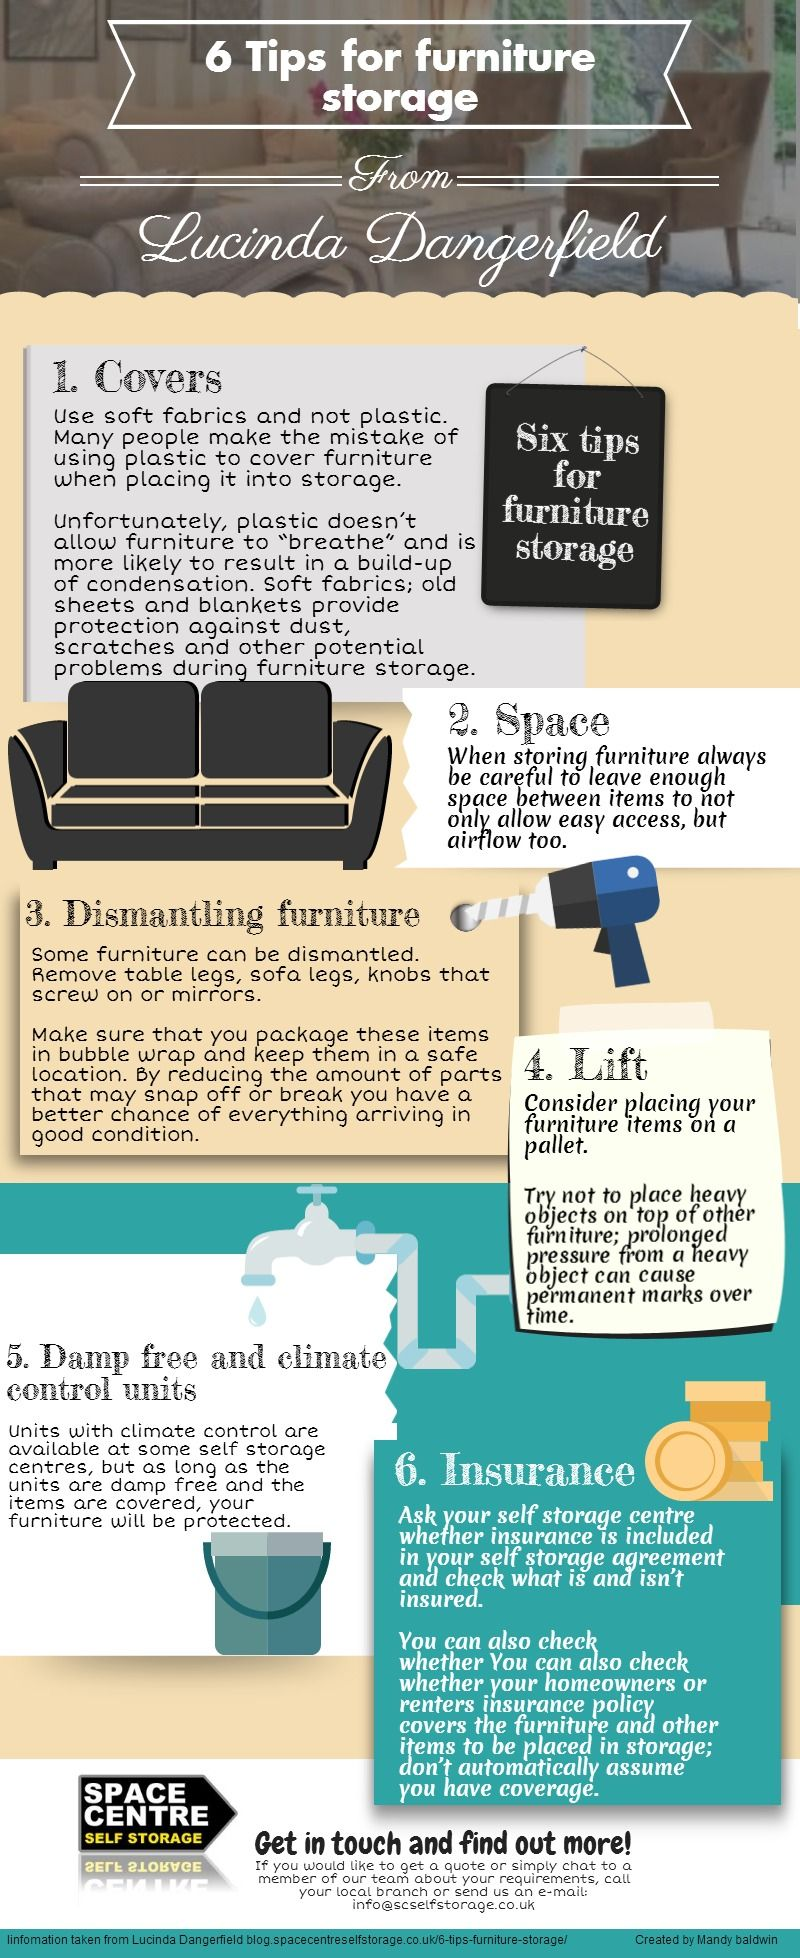 6 Tips for furniture storage